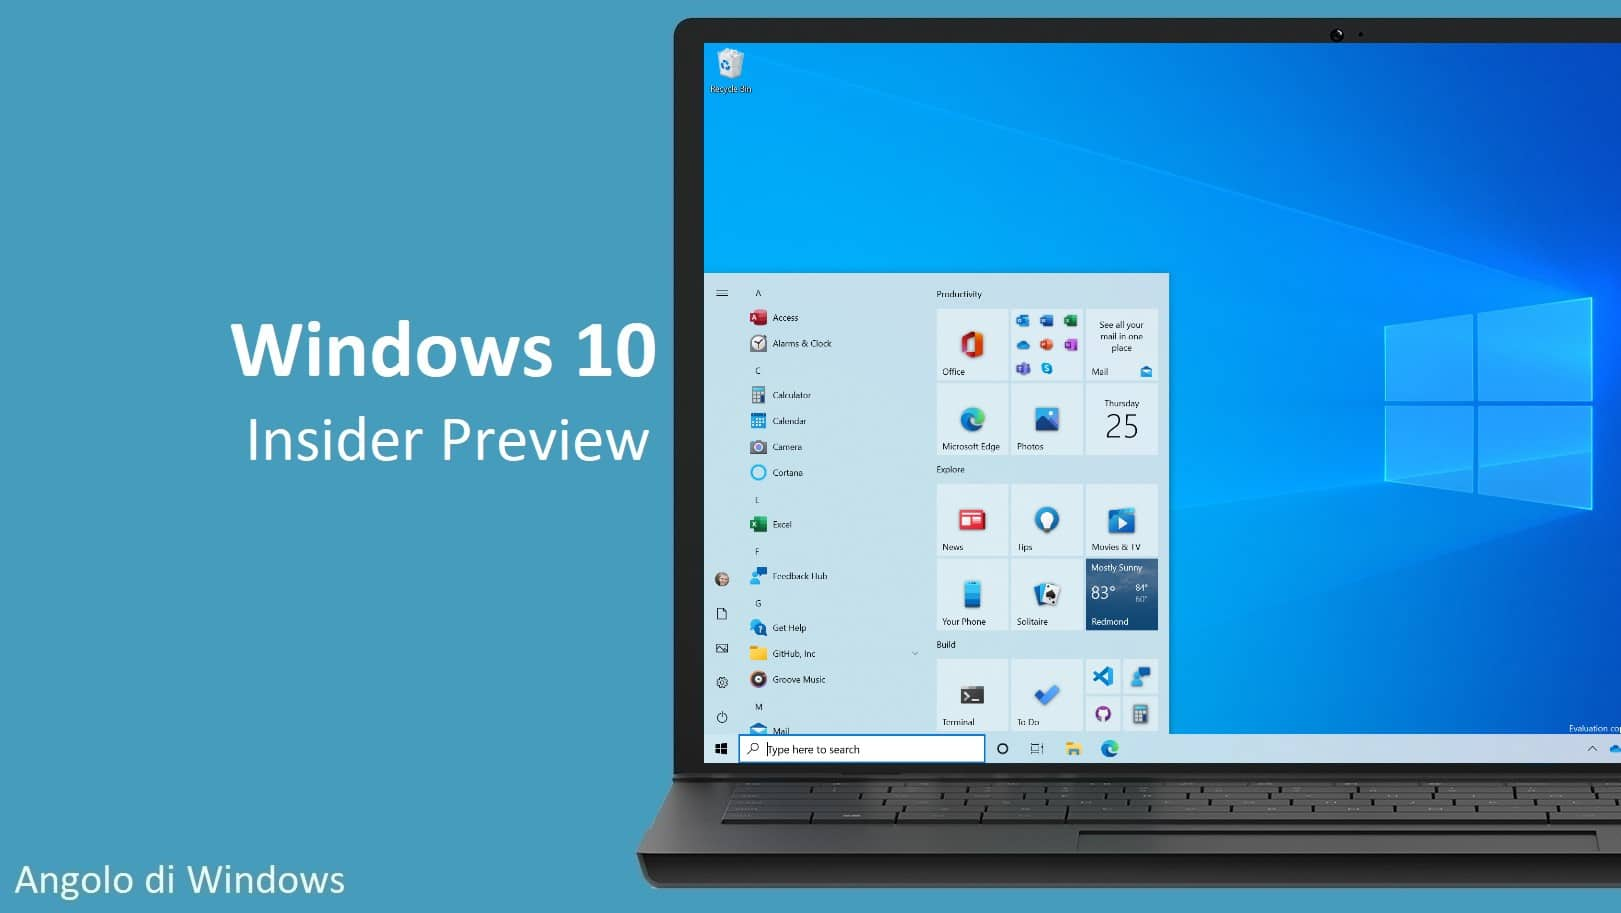 Le ultime novità di Windows 10 Insider Preview build 20190